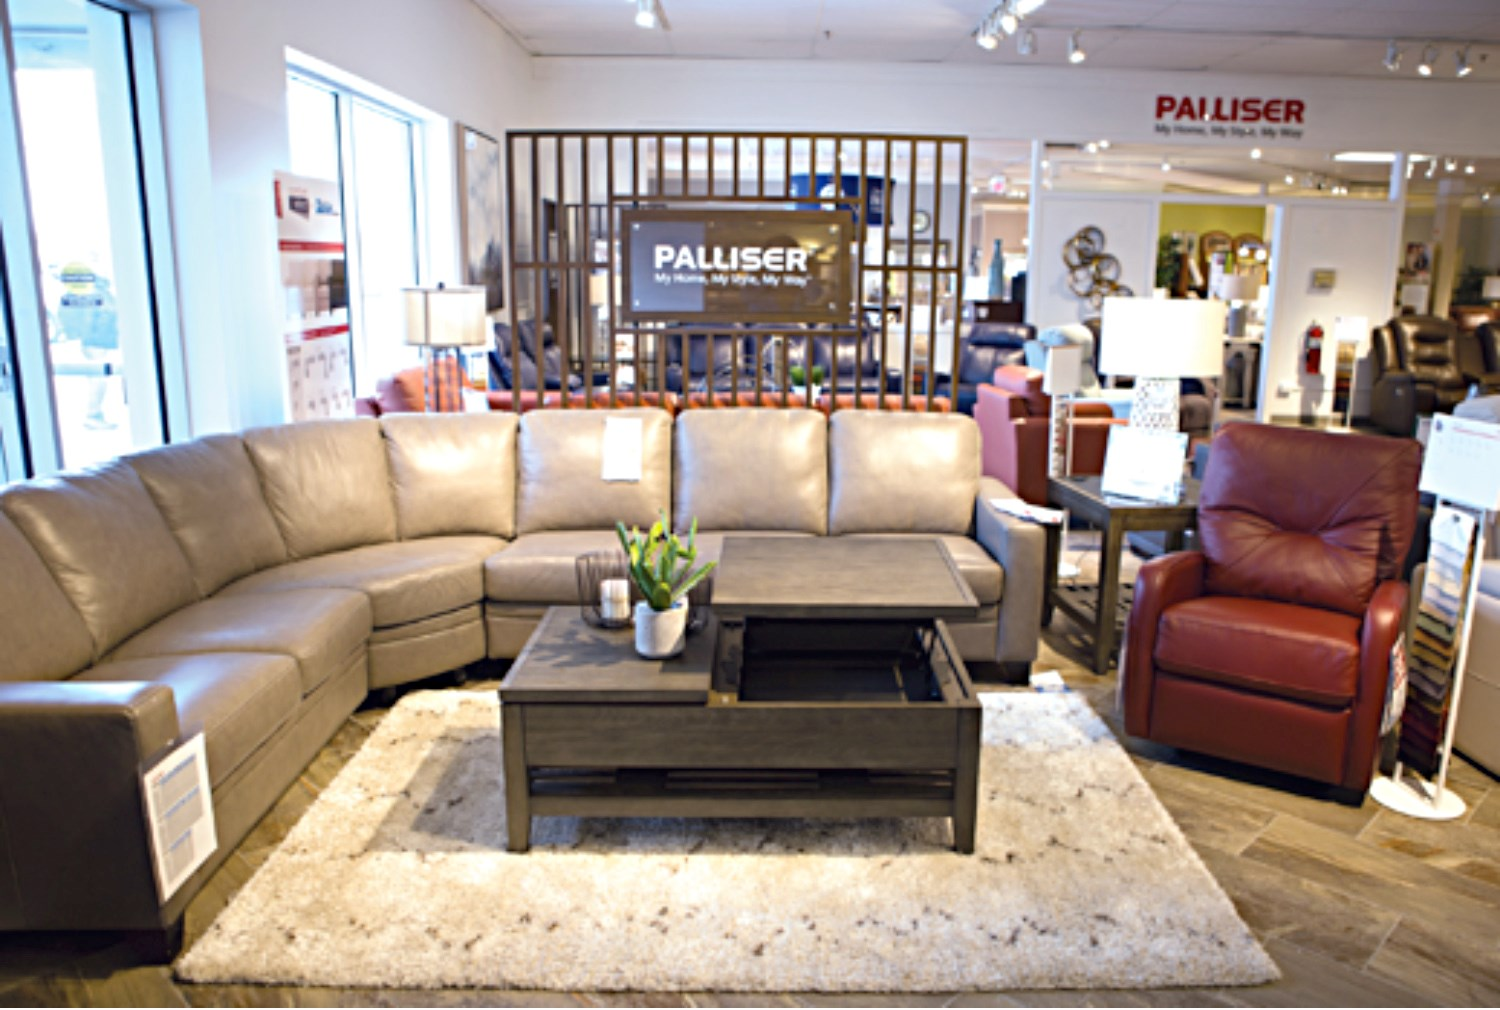 Palliser-Gallery  Darvin Furniture  Orland Park, Chicago, IL